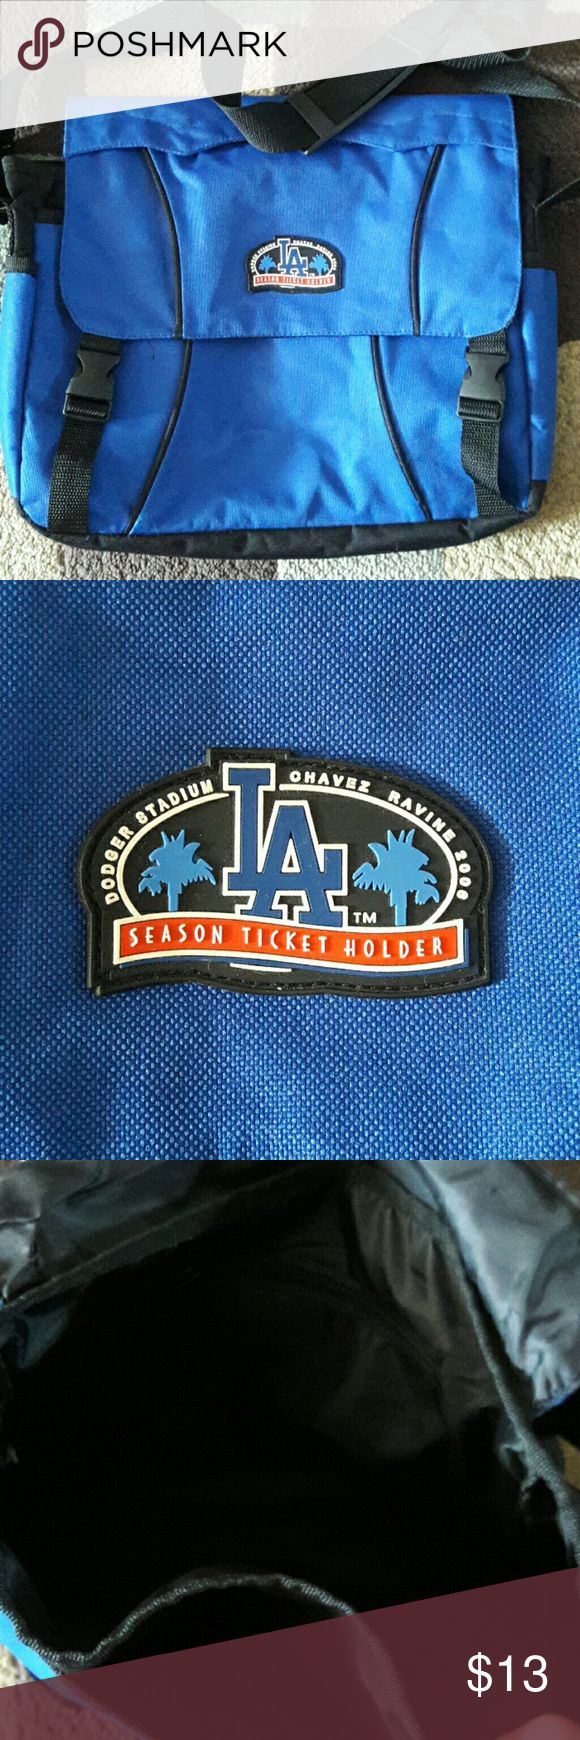 Los Angeles Dodgers messenger bag Los Angeles Dodgers messenger bag. Has zippered pocket inside. This rare bag was a season ticket holder gift. Bags